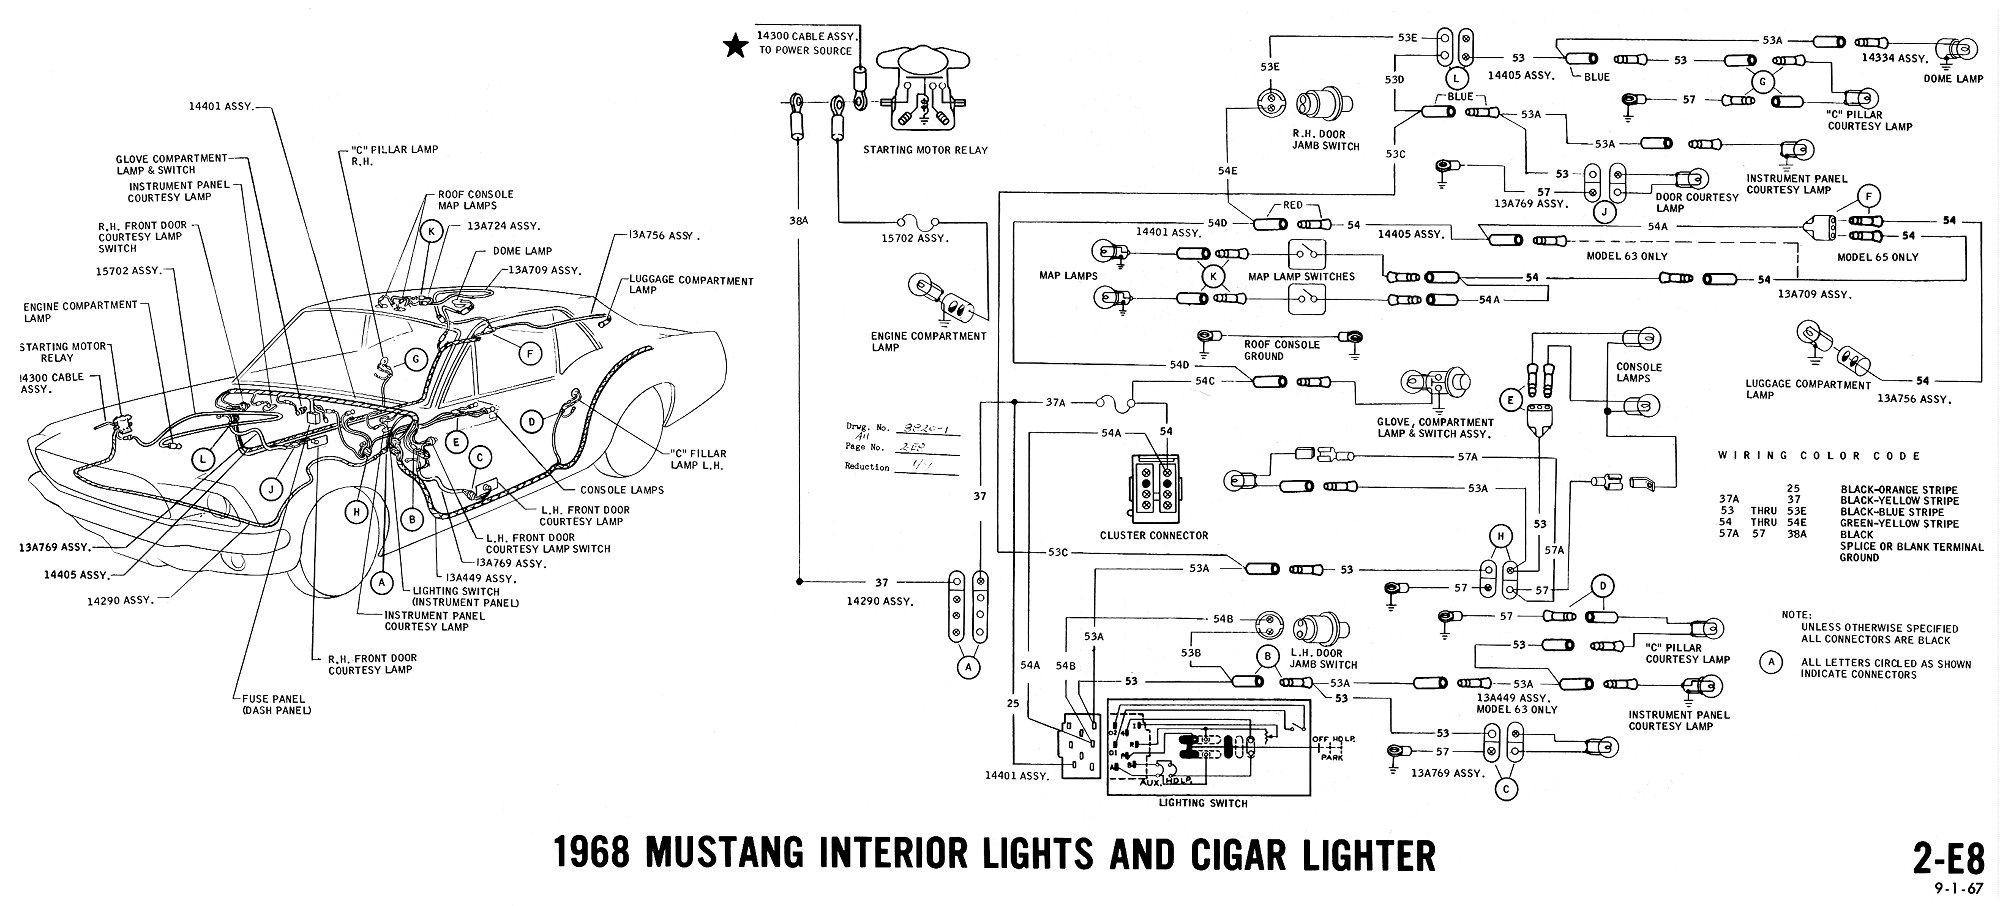 E8 1968 mustang wiring diagrams evolving software 67 cougar turn signal wiring diagram at eliteediting.co